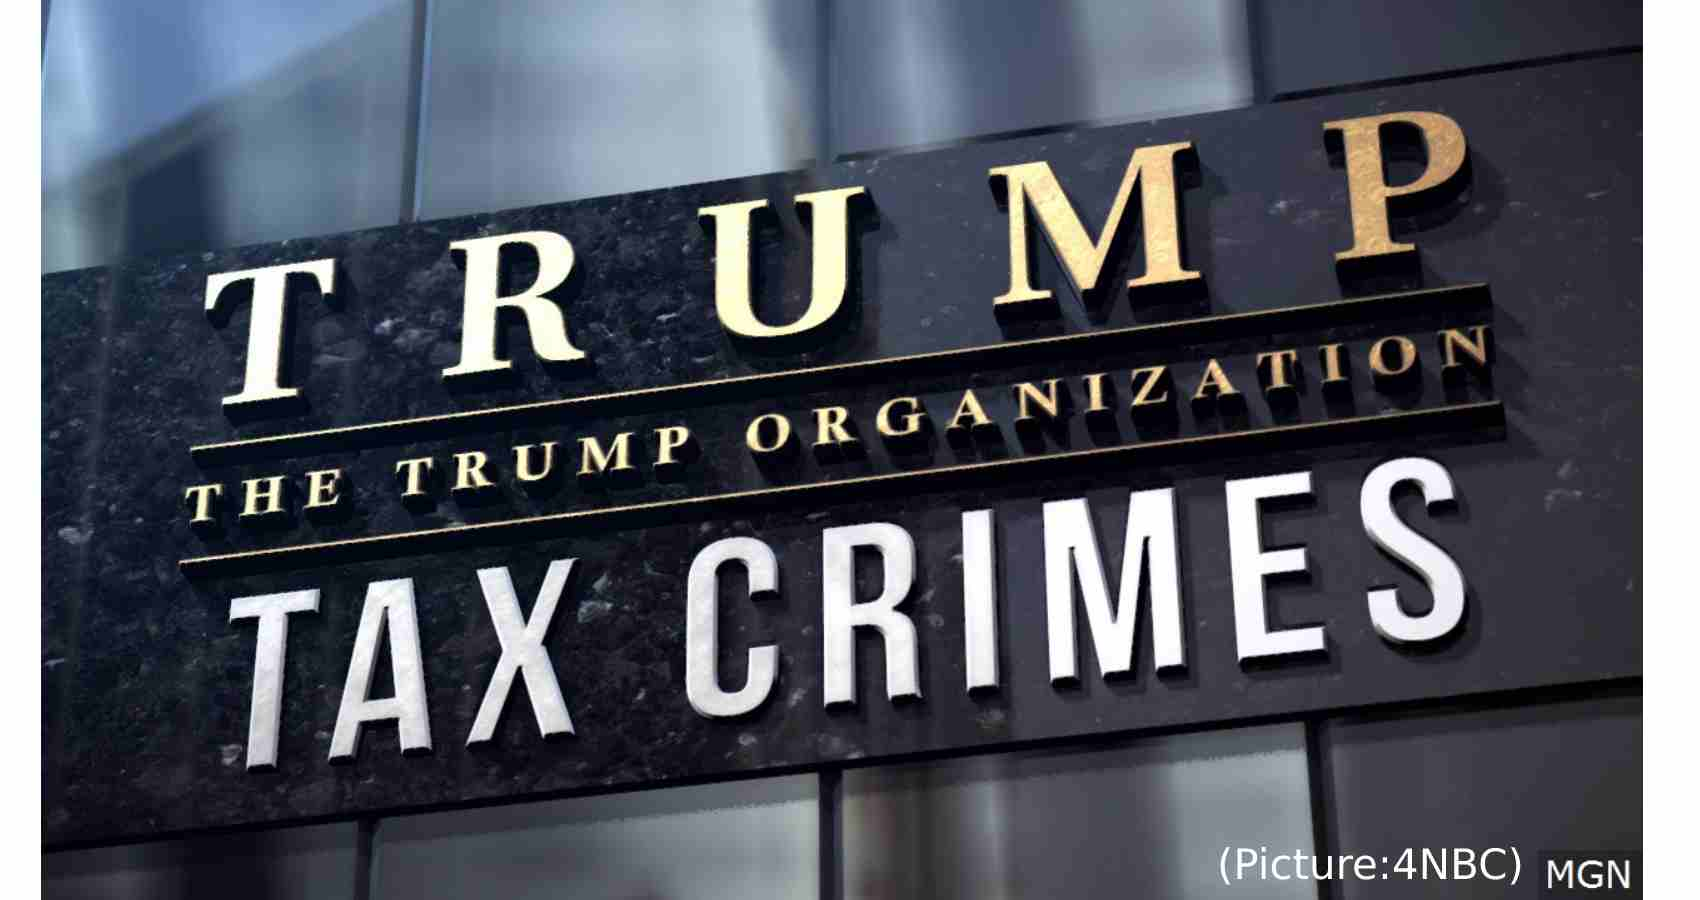 Trump Organization Indicted With Tax Crimes